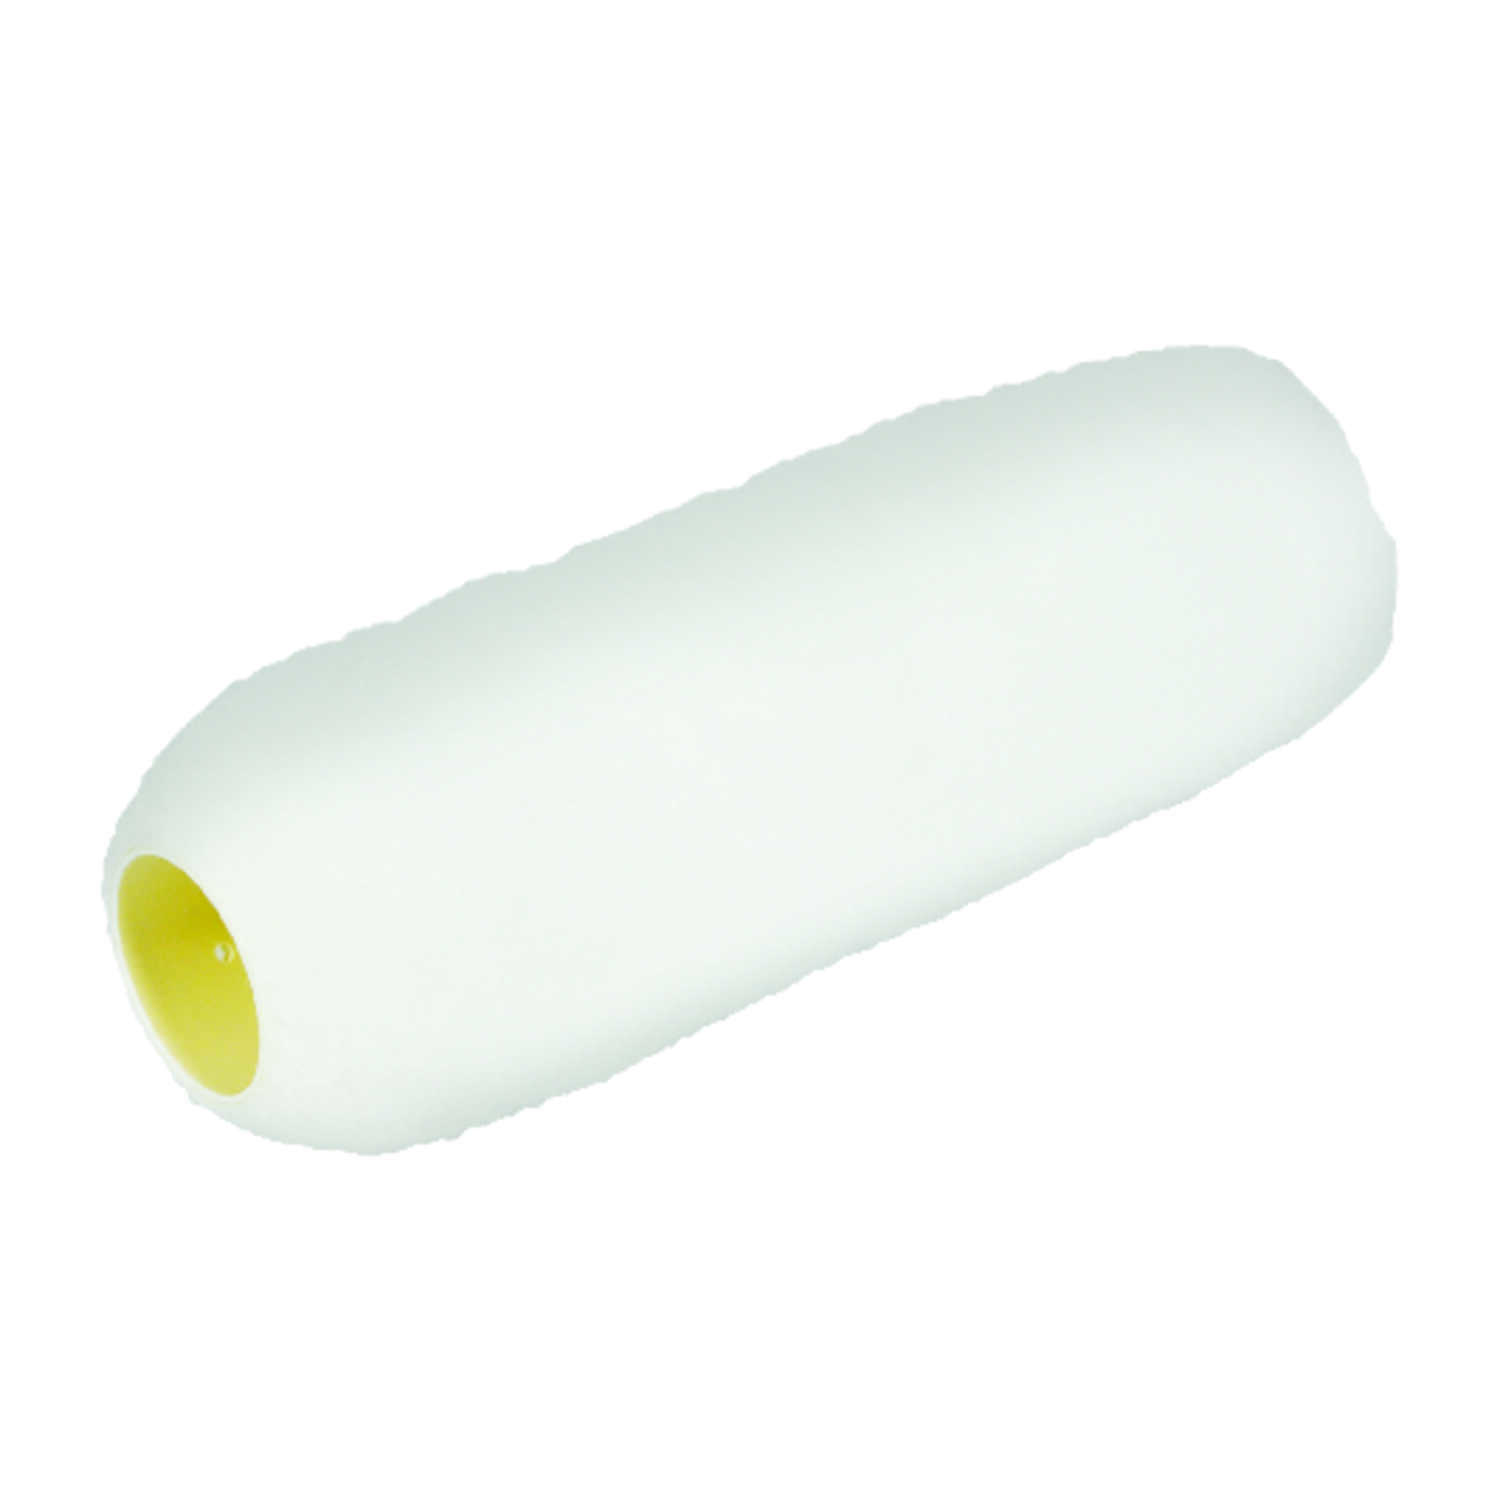 Wagner  Polyester  3/4 in.  x 9 in. W x 3/4 in. L x 9 in. W Paint Roller Cover  For Semi-Smooth Surf